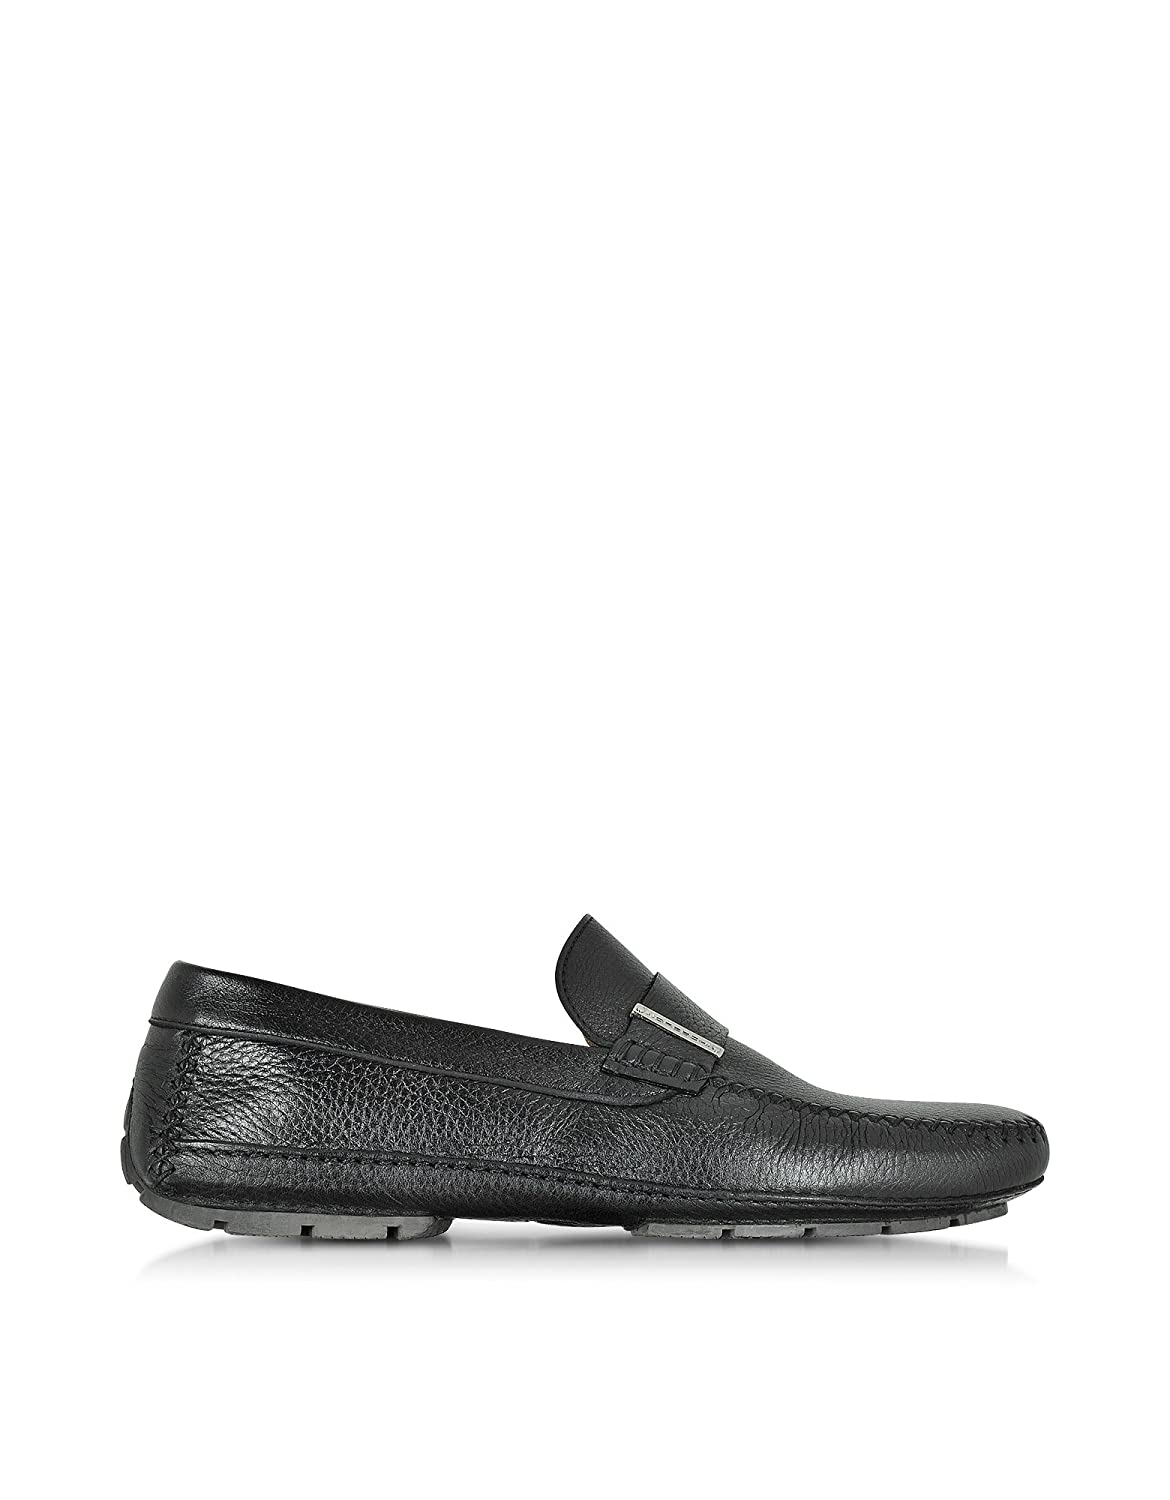 MORESCHI MEN'S 41426SHMIAMIBLACK BLACK LEATHER LOAFERS